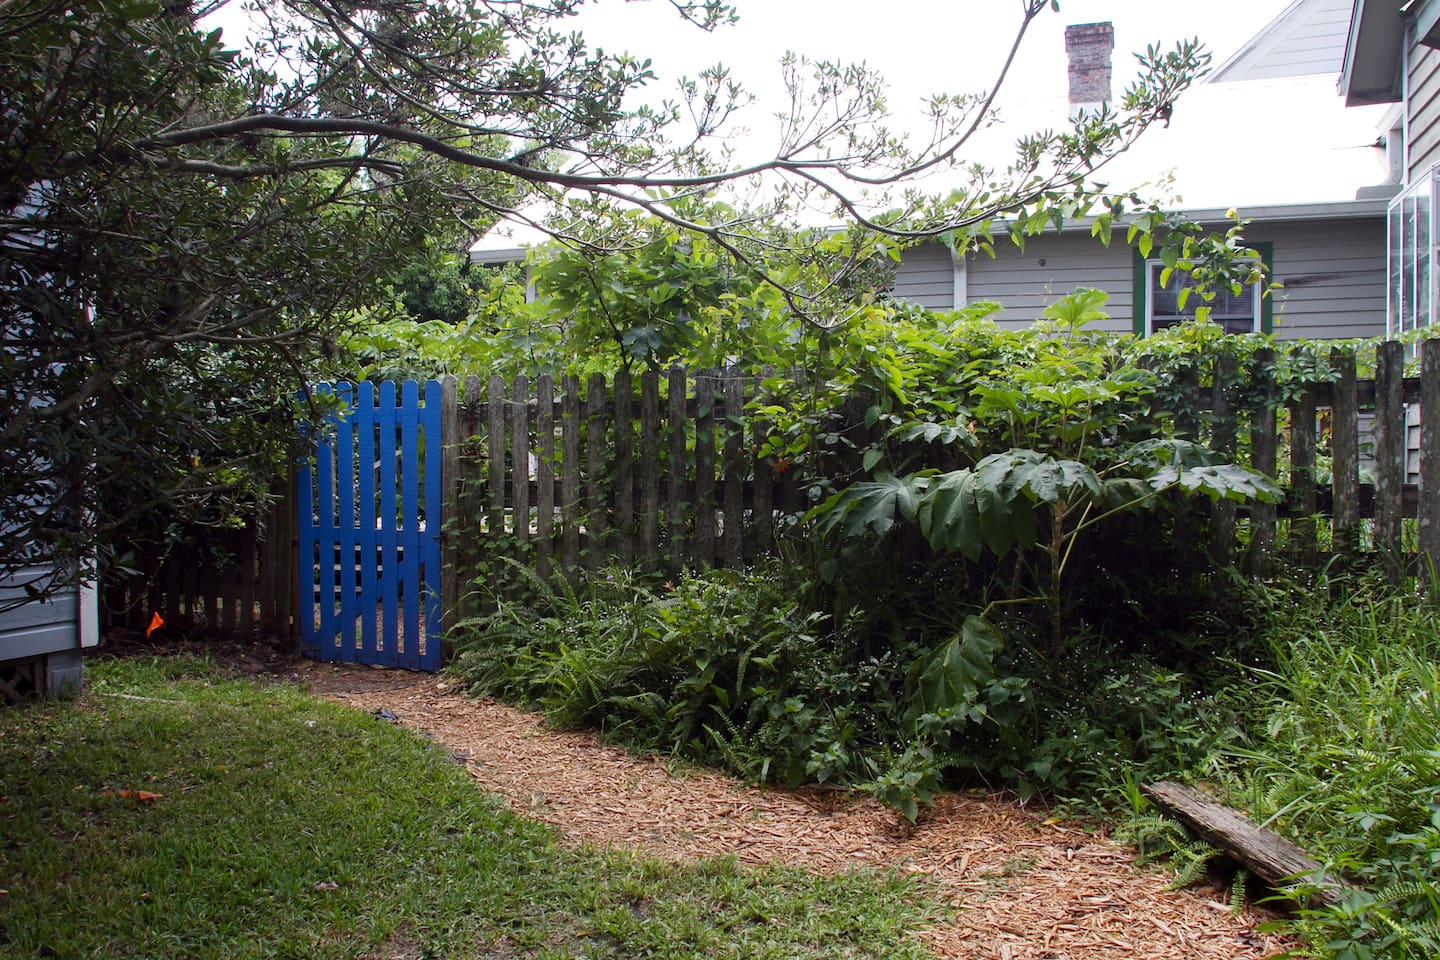 Blue gate entrance to back porch and yard